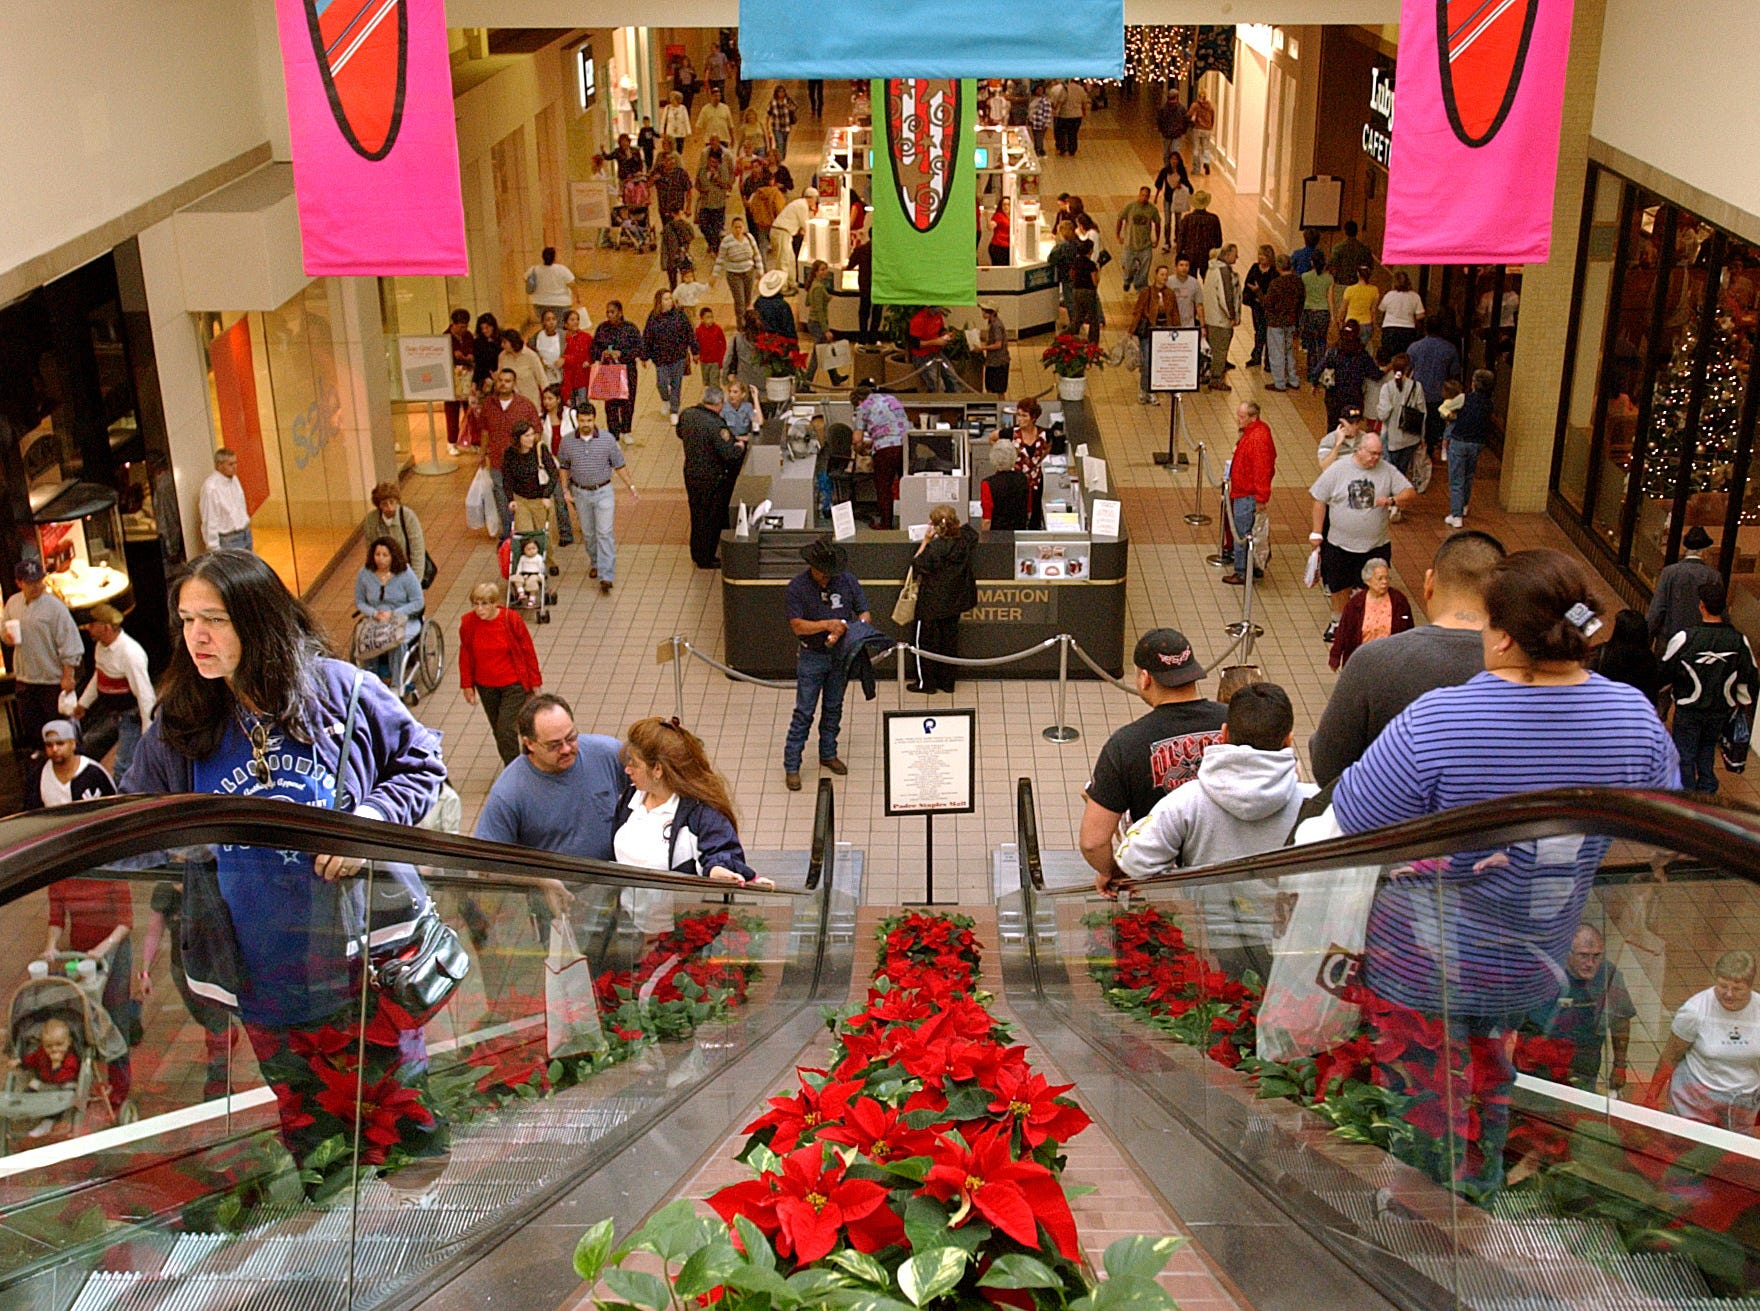 Christmas shopping crowds at Padre Staples Mall in Corpus Christi on Dec. 18, 2004.